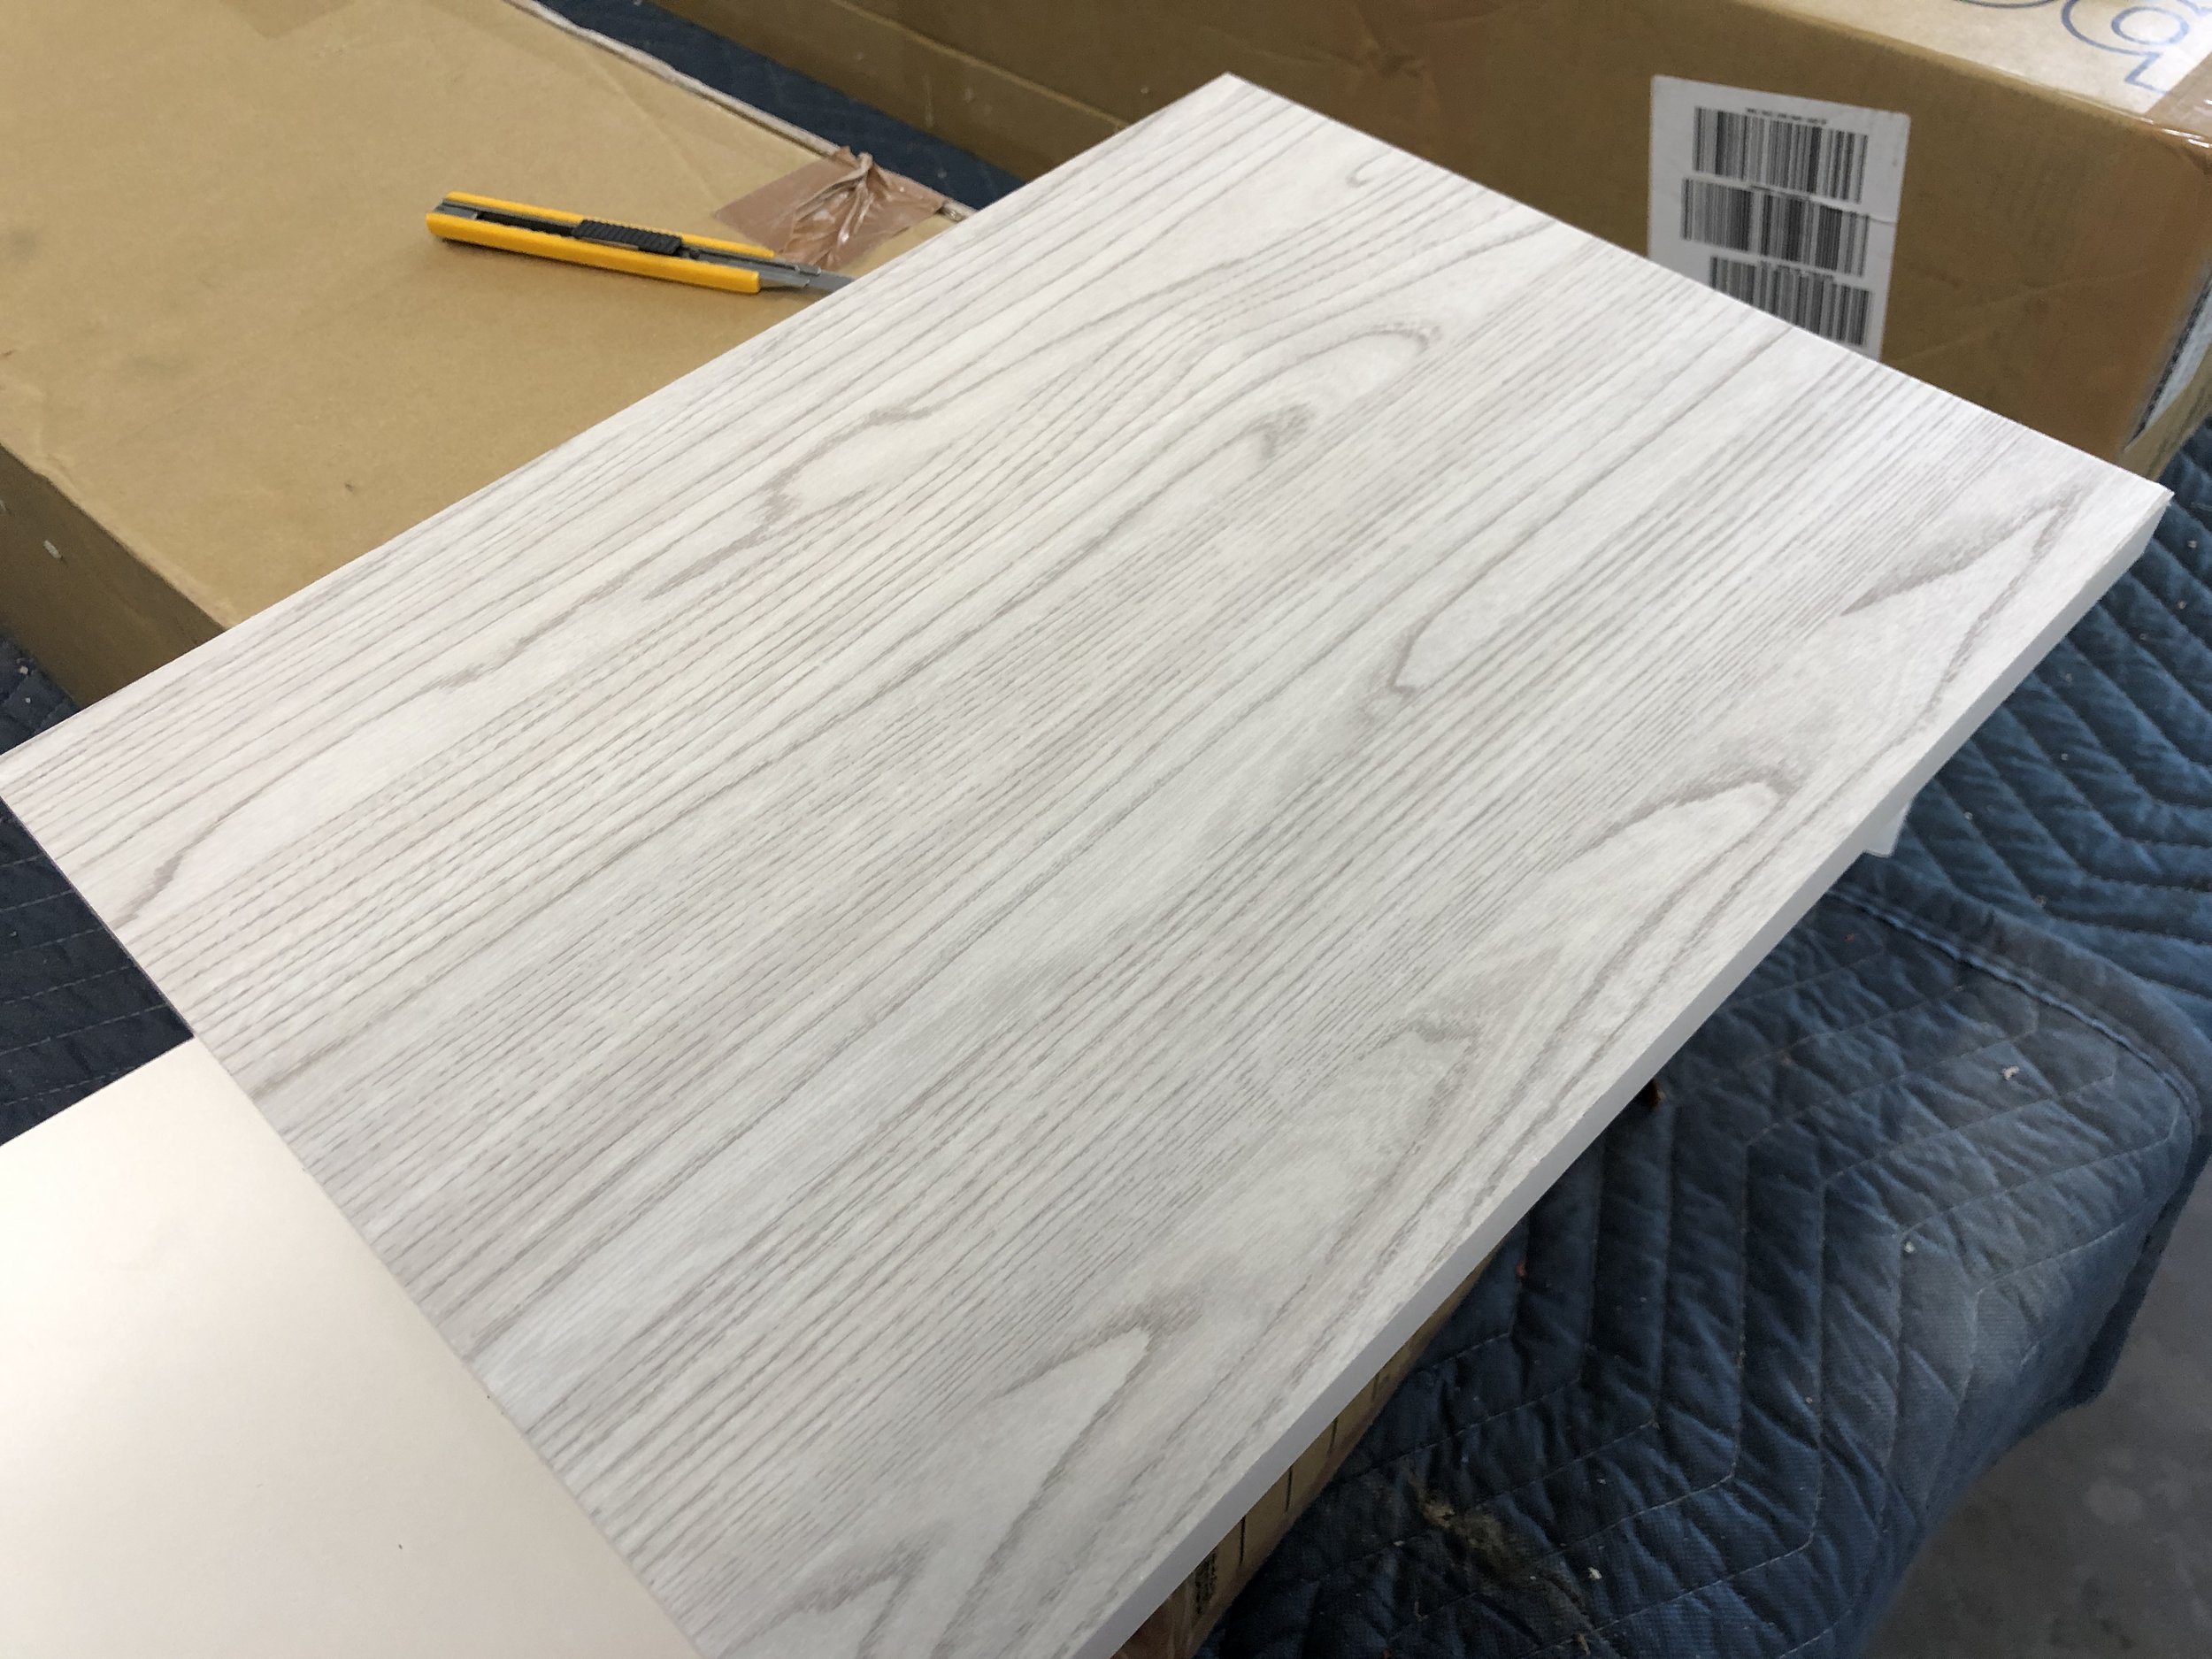 sw 127, Belbien, White wood grain, rm wraps, Grayish Elm, Super Real Wood, Architectural Finishes, decorative surface finishes